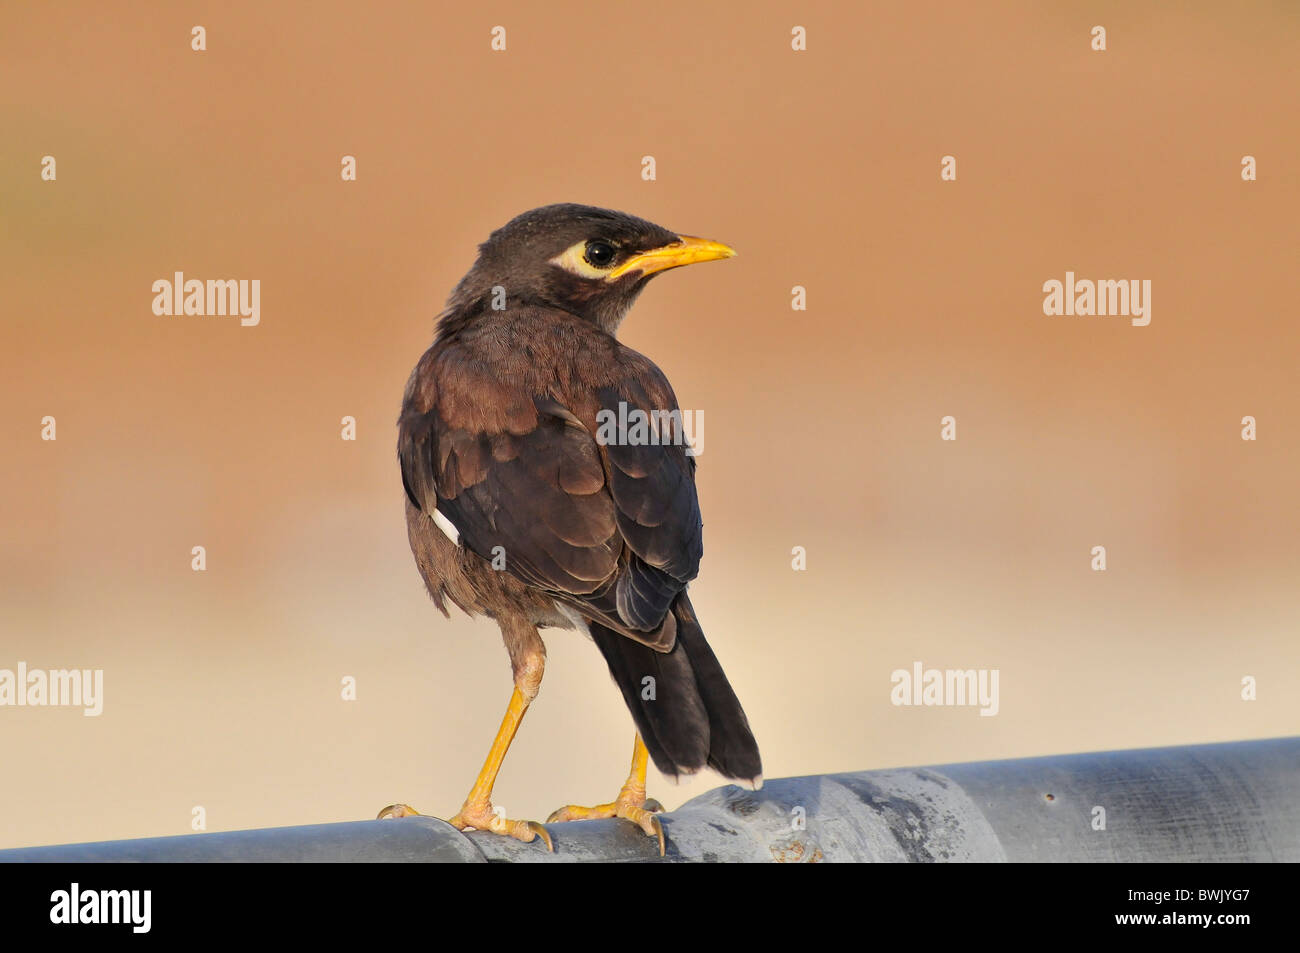 Common myna (or Indian Myna Acridotheres tristis). - Stock Image